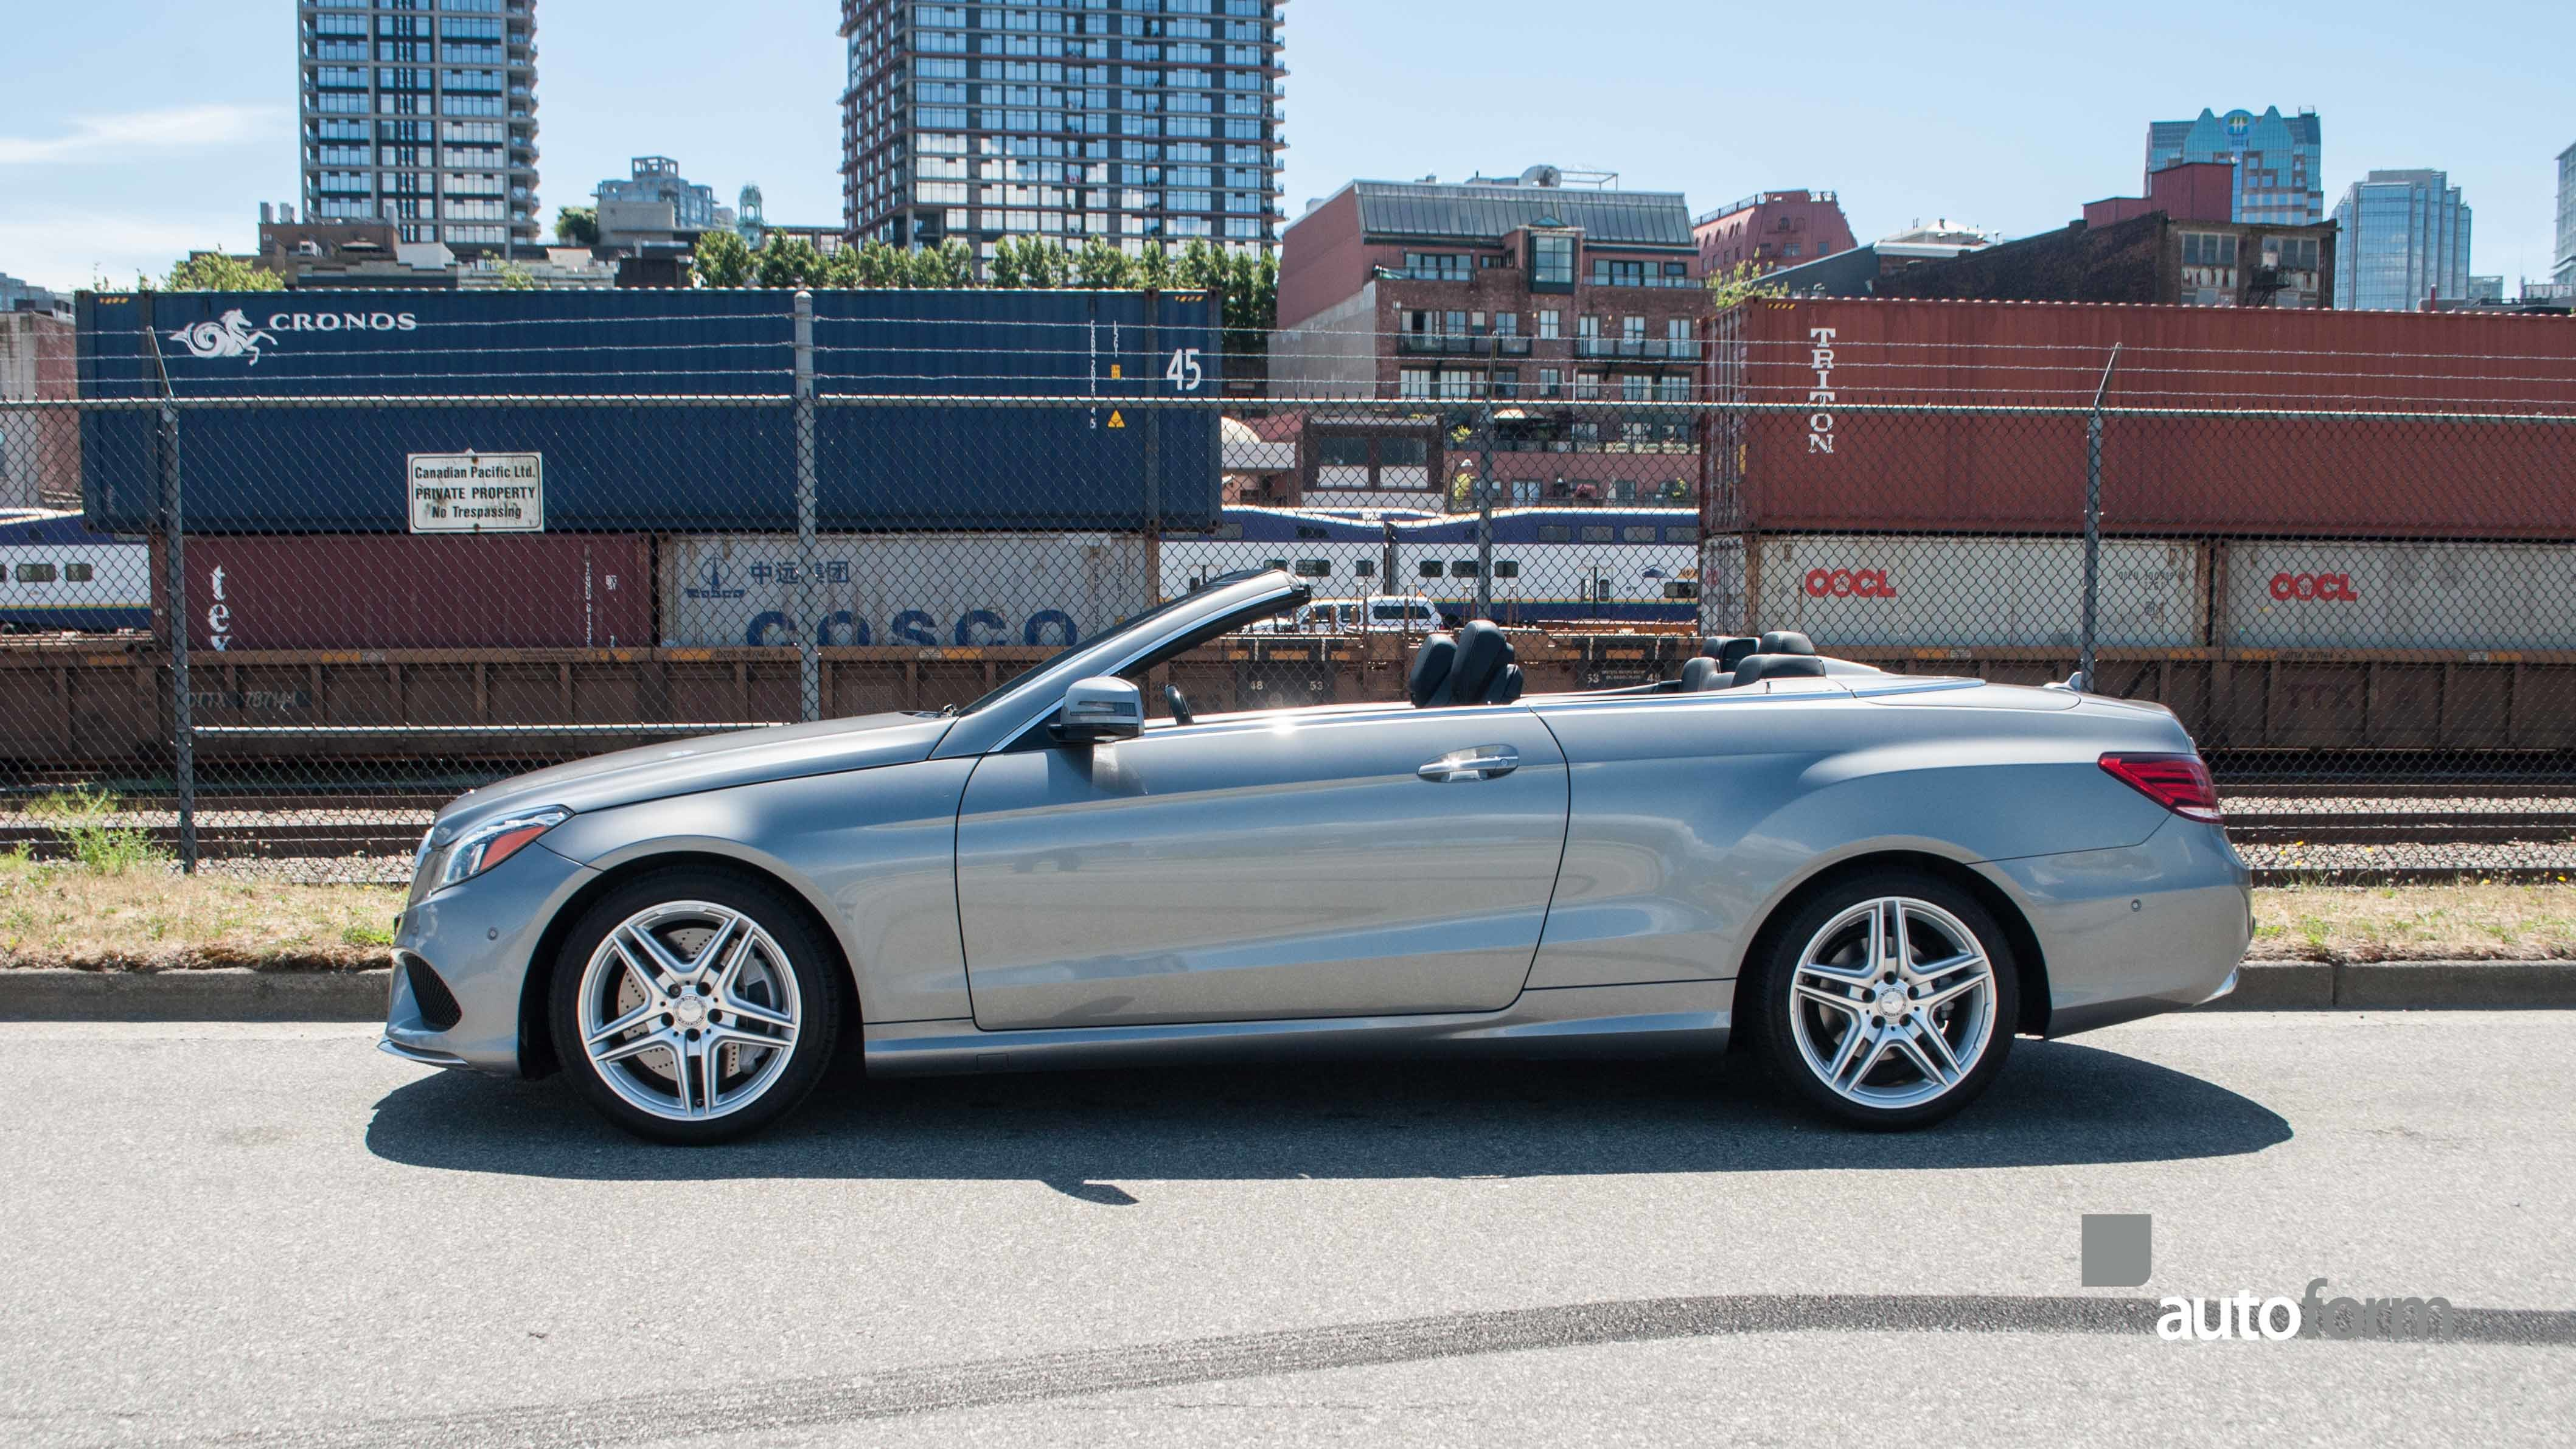 benz mercedes cabriolet autonews myautoworld new the class convertible com used c